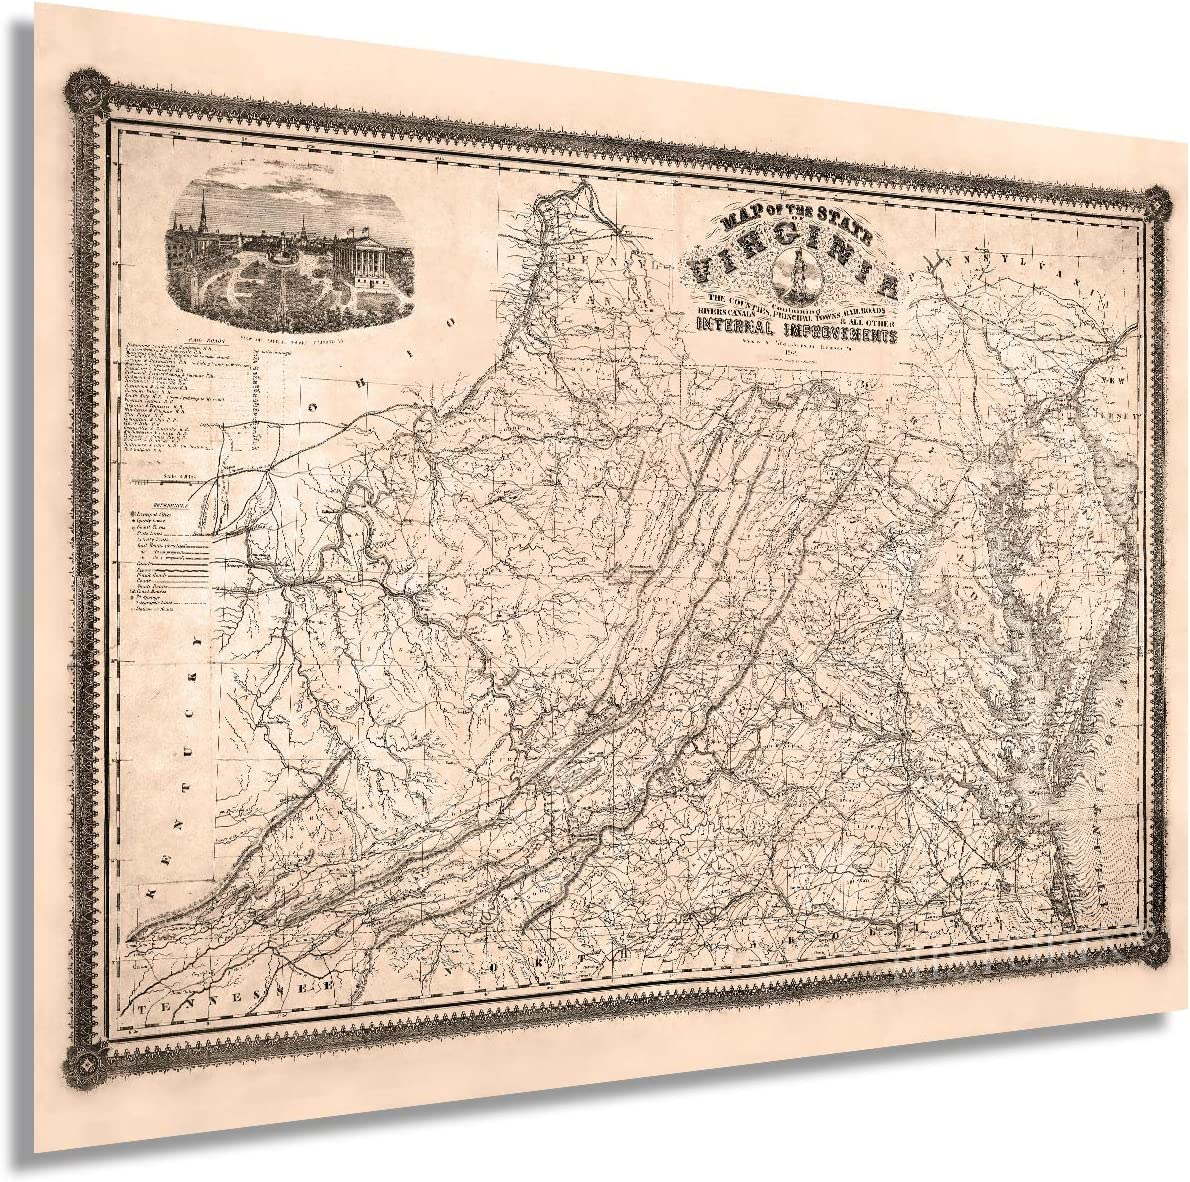 Historix Vintage 1862 Map of Virginia - 18x24 Inch Vintage Wall Art - Map of State of Virginia During the Civil War - State Map of Virginia - Virginia Wall Map - Virginia Decor (2 sizes)